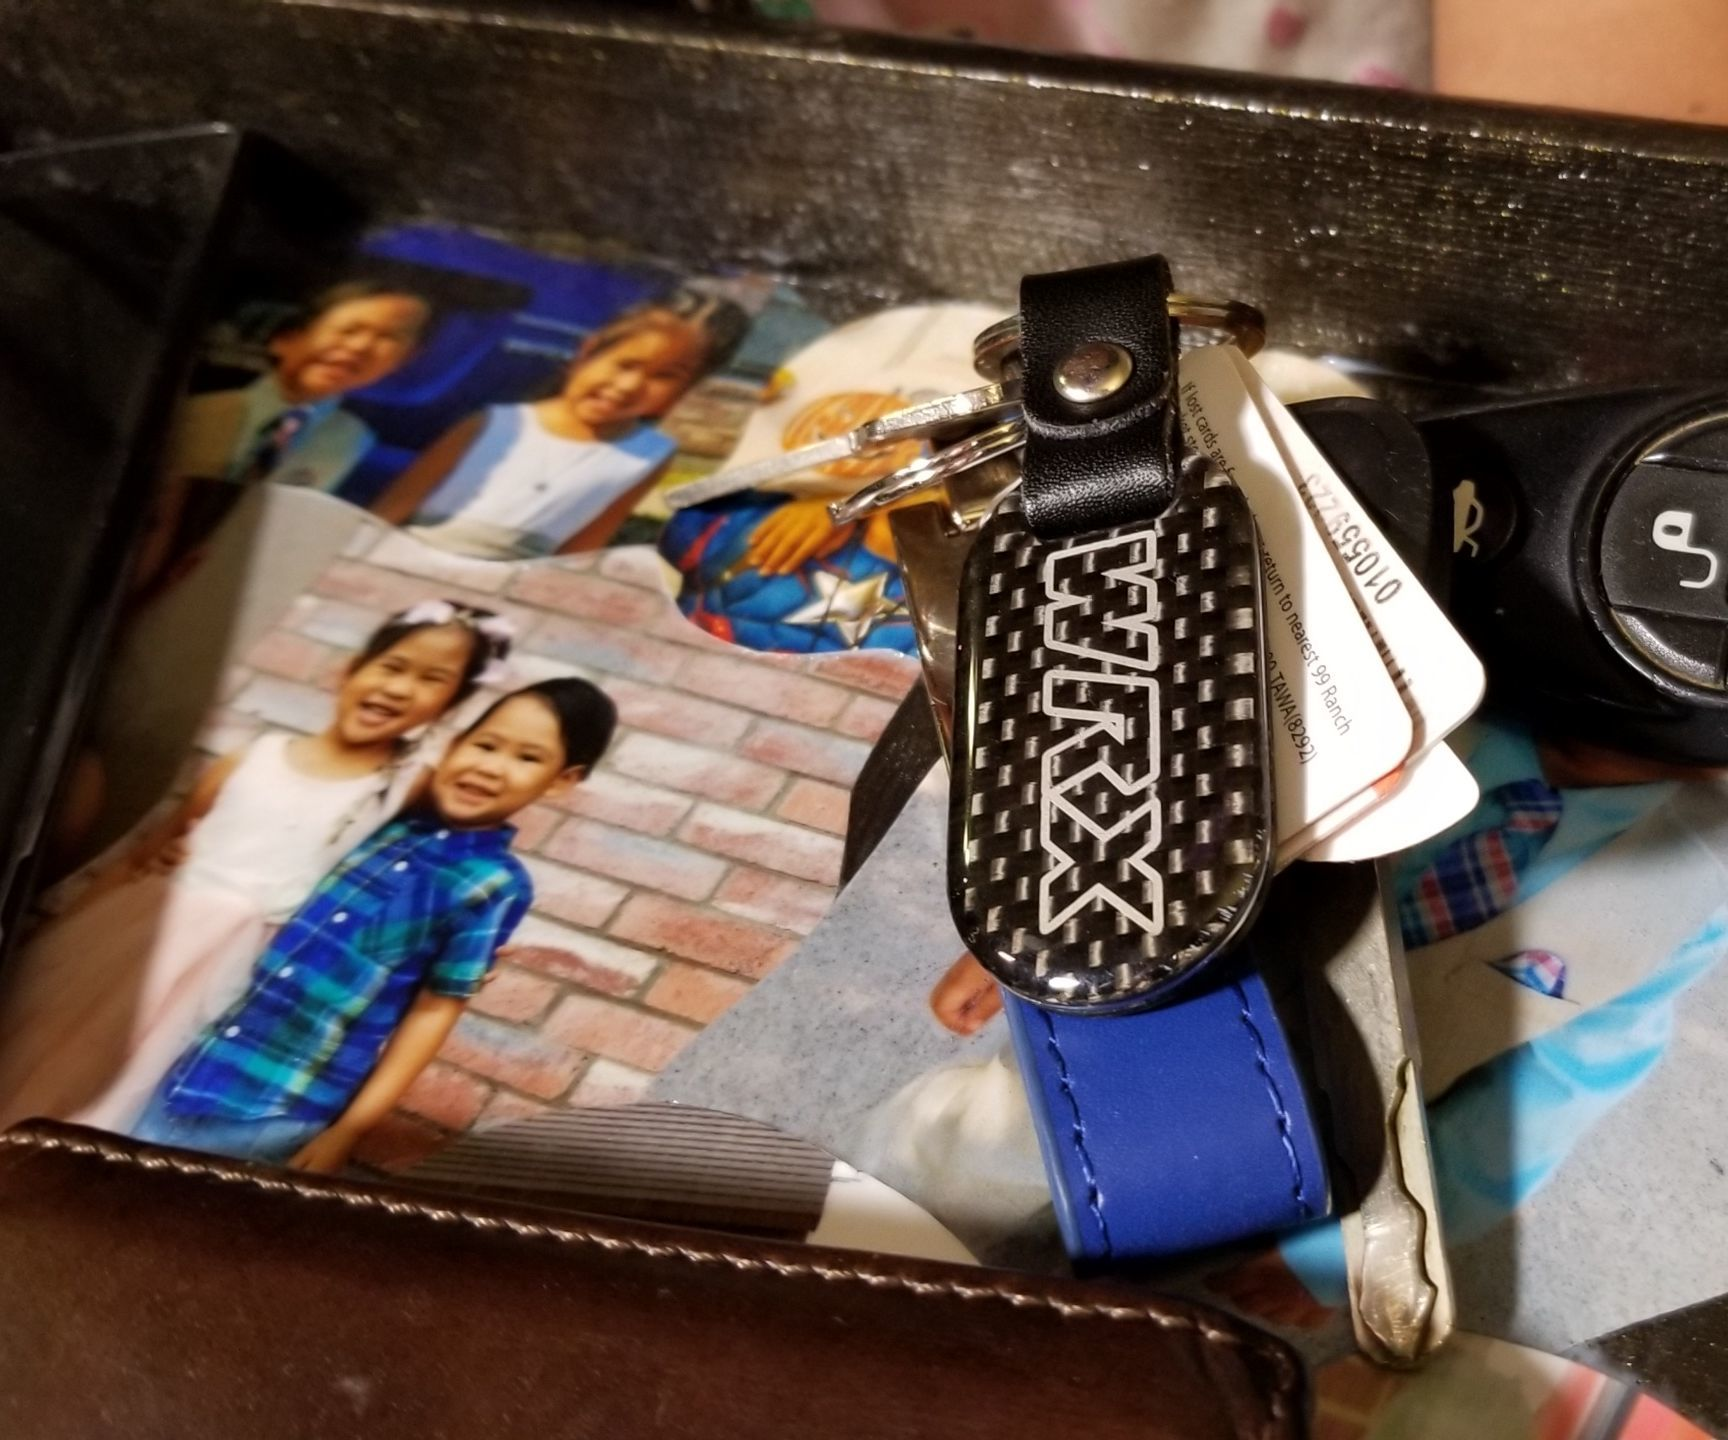 DIY Photo Collage Accessories Organizer/Tray for Father's Day